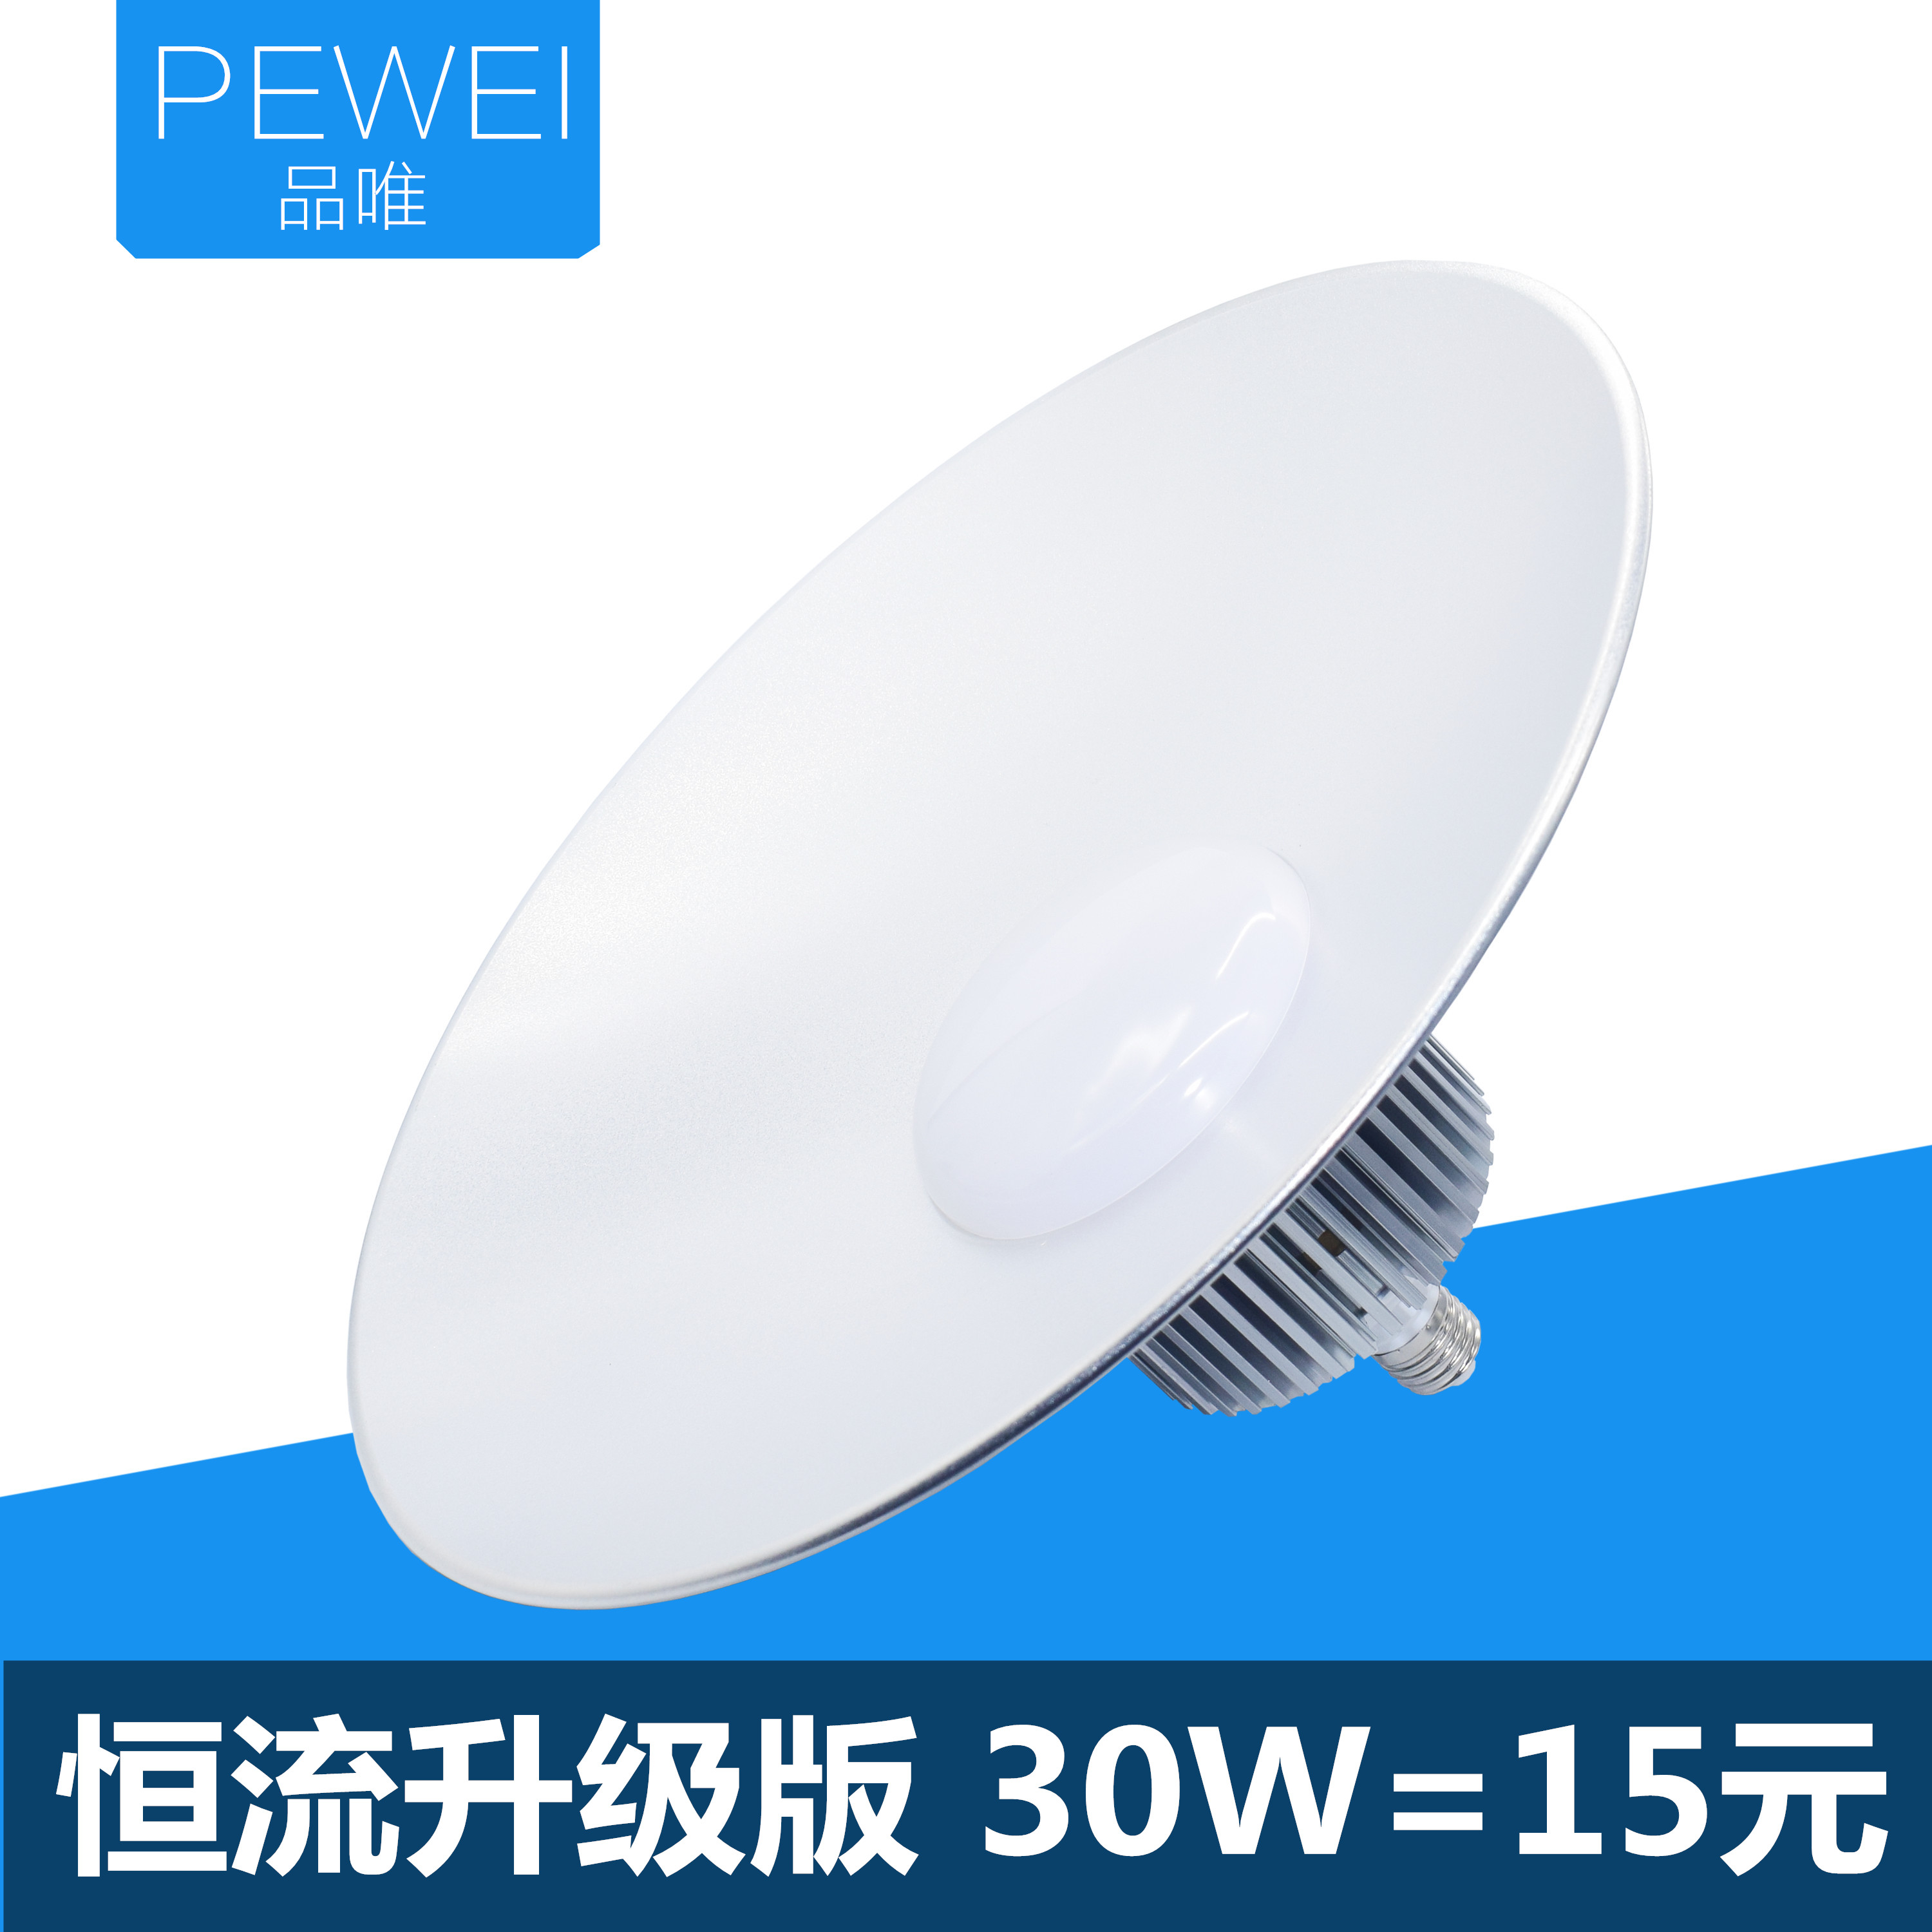 Super bright LED lamp lamp factory workshop warehouse lamp explosion-proof lamp chandelier ceiling lamp 100W50W Lighting Factory